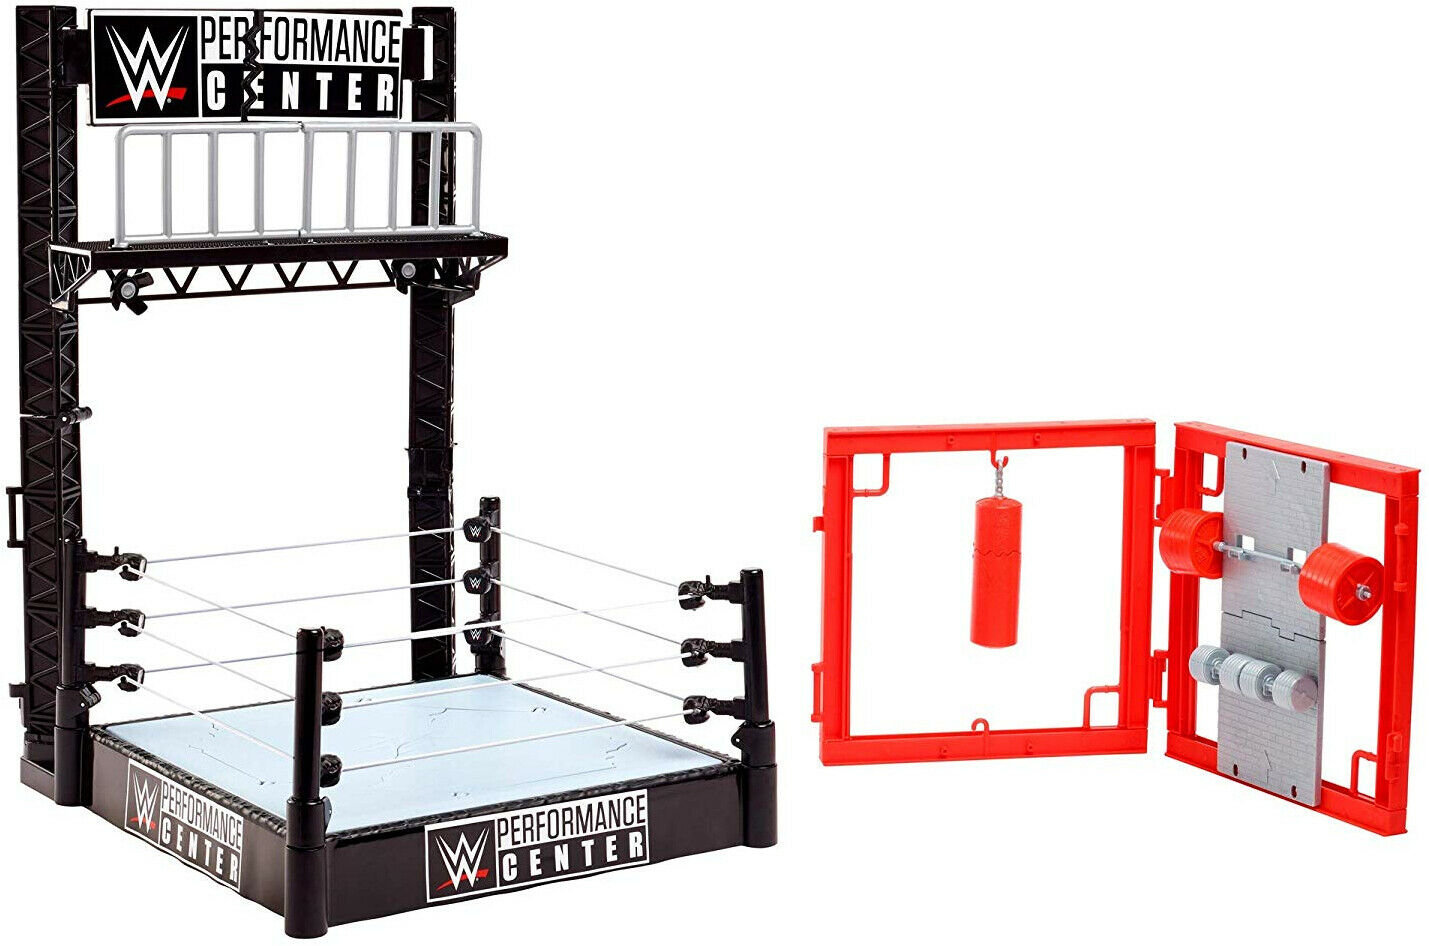 WWE Wrekkin Performance Center Playset Kid Toy Gift